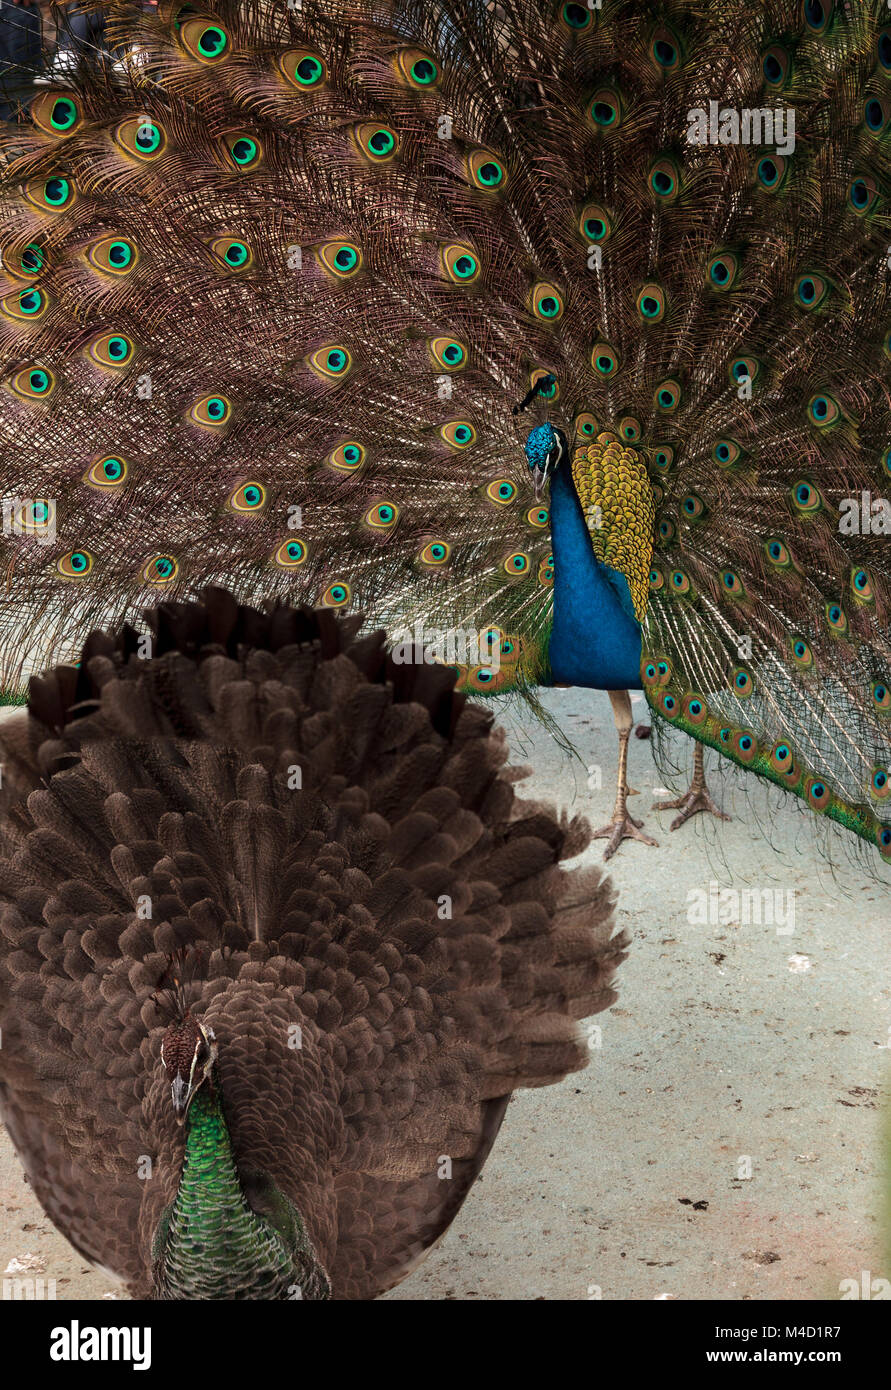 Mating display of a blue and green male peacock - Stock Image